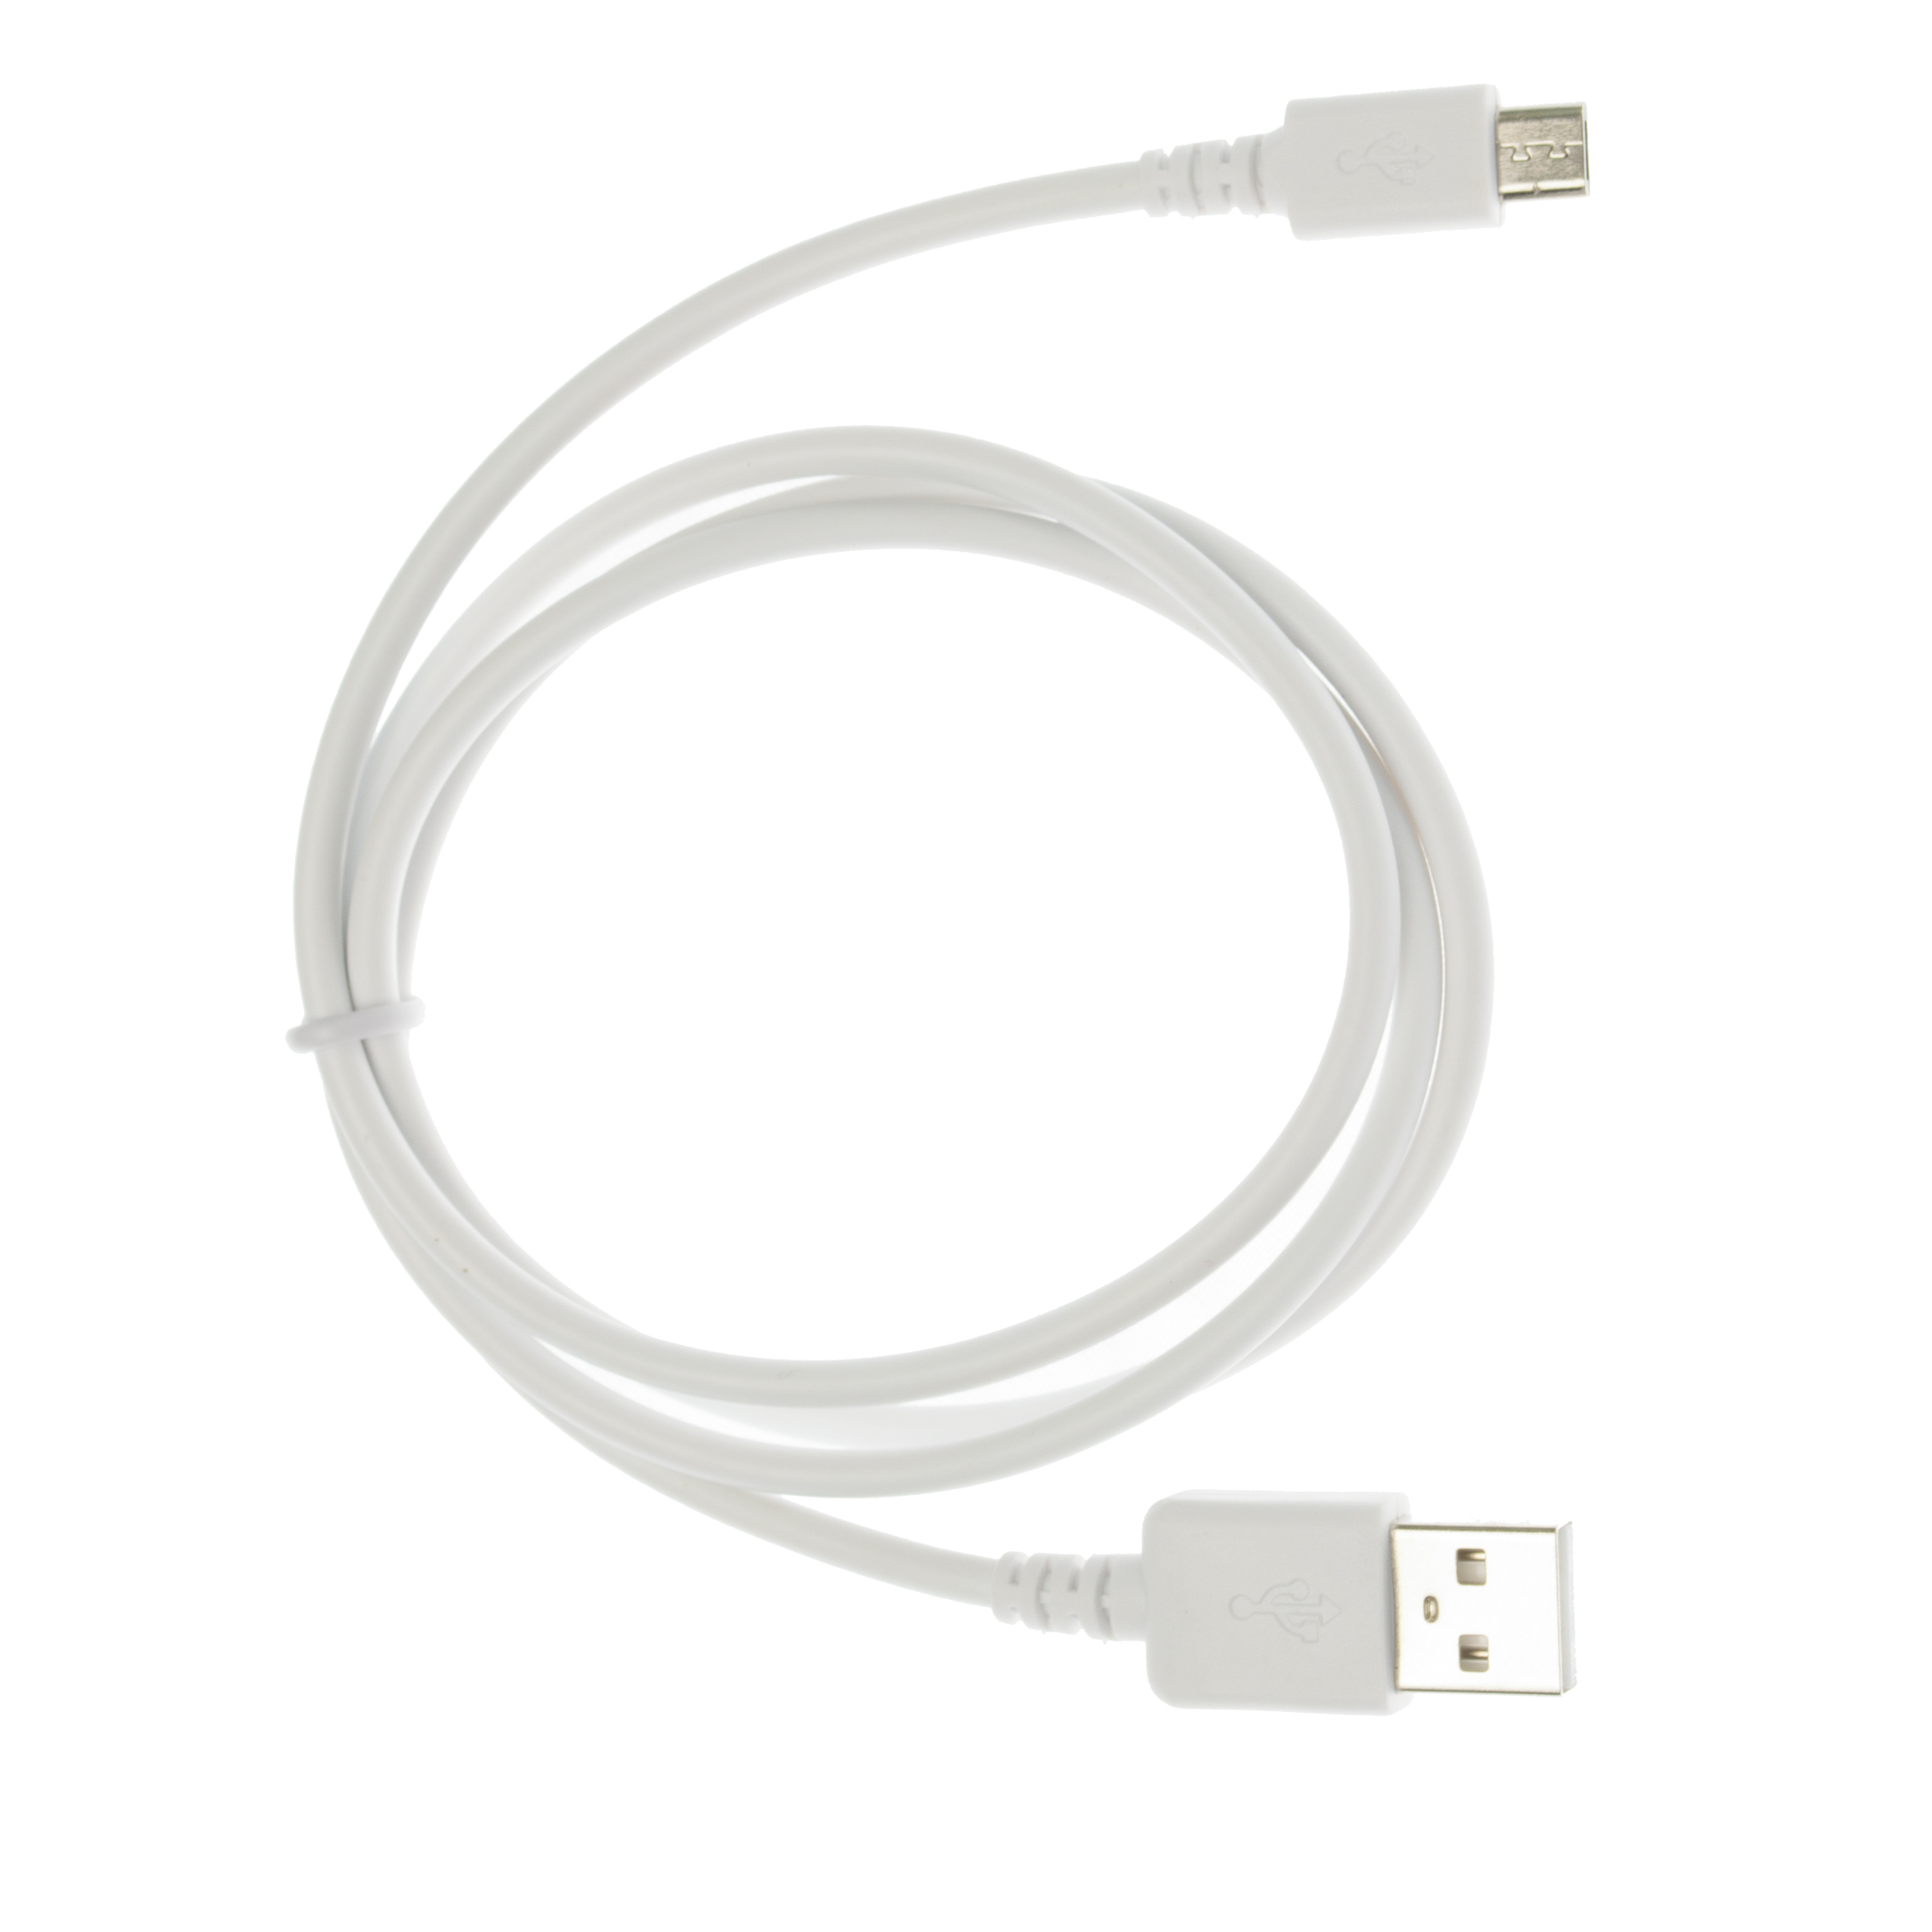 USB 5v Charger Cable Compatible with  Vtech VM343 PU Parent Unit Baby Monitor